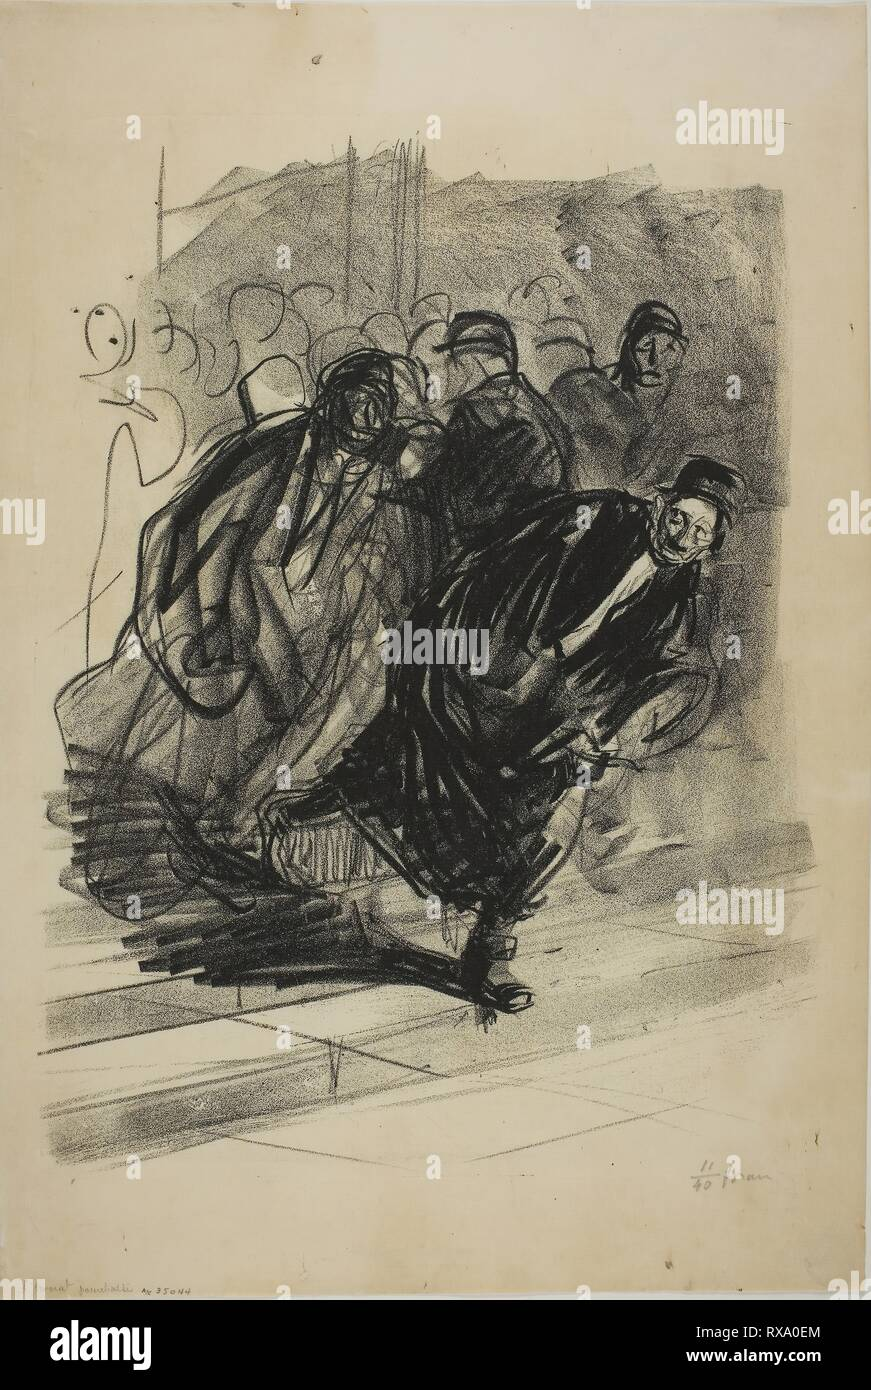 The Lawyer Pursued. Jean Louis Forain; French, 1852-1931. Date: 1915. Dimensions: 415 × 315 mm (image); 521 × 350 mm (sheet). Lithograph on cream Japanese paper. Origin: France. Museum: The Chicago Art Institute. - Stock Image